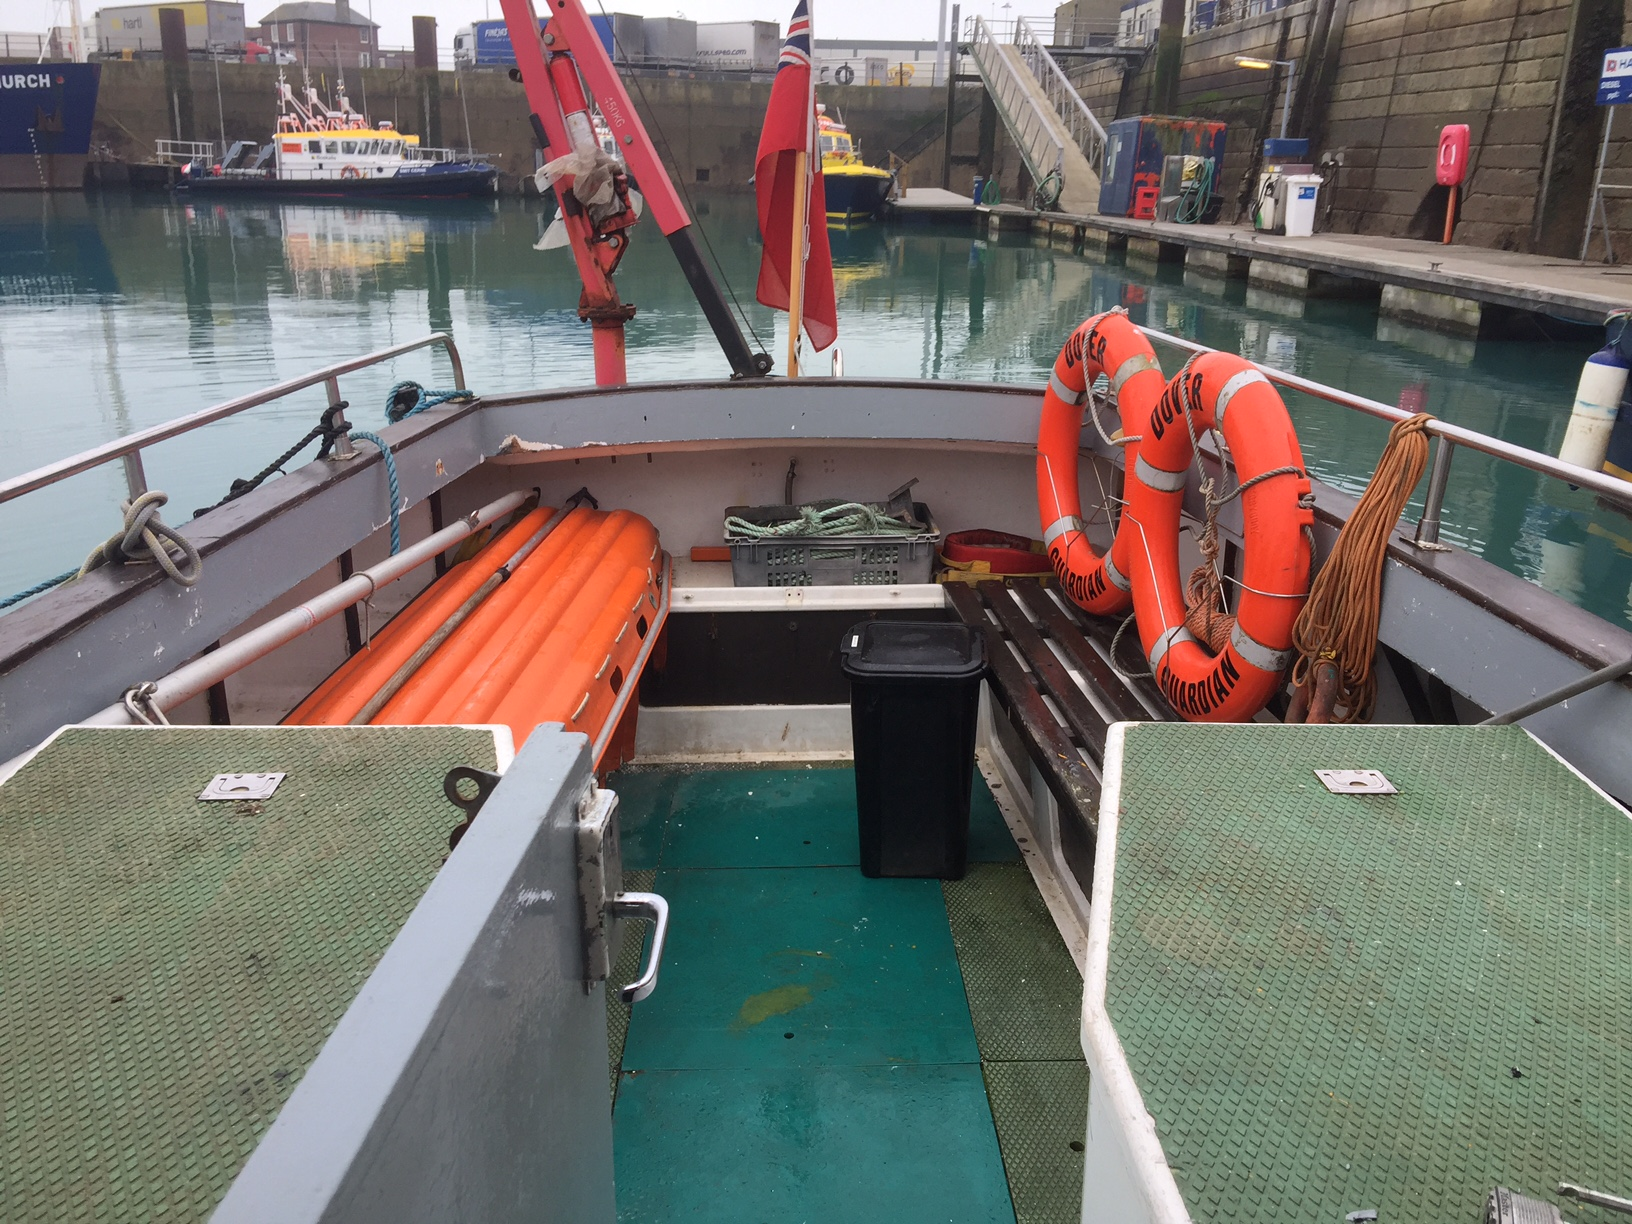 Cheverton work boat for sale - SOLD - Welcome to